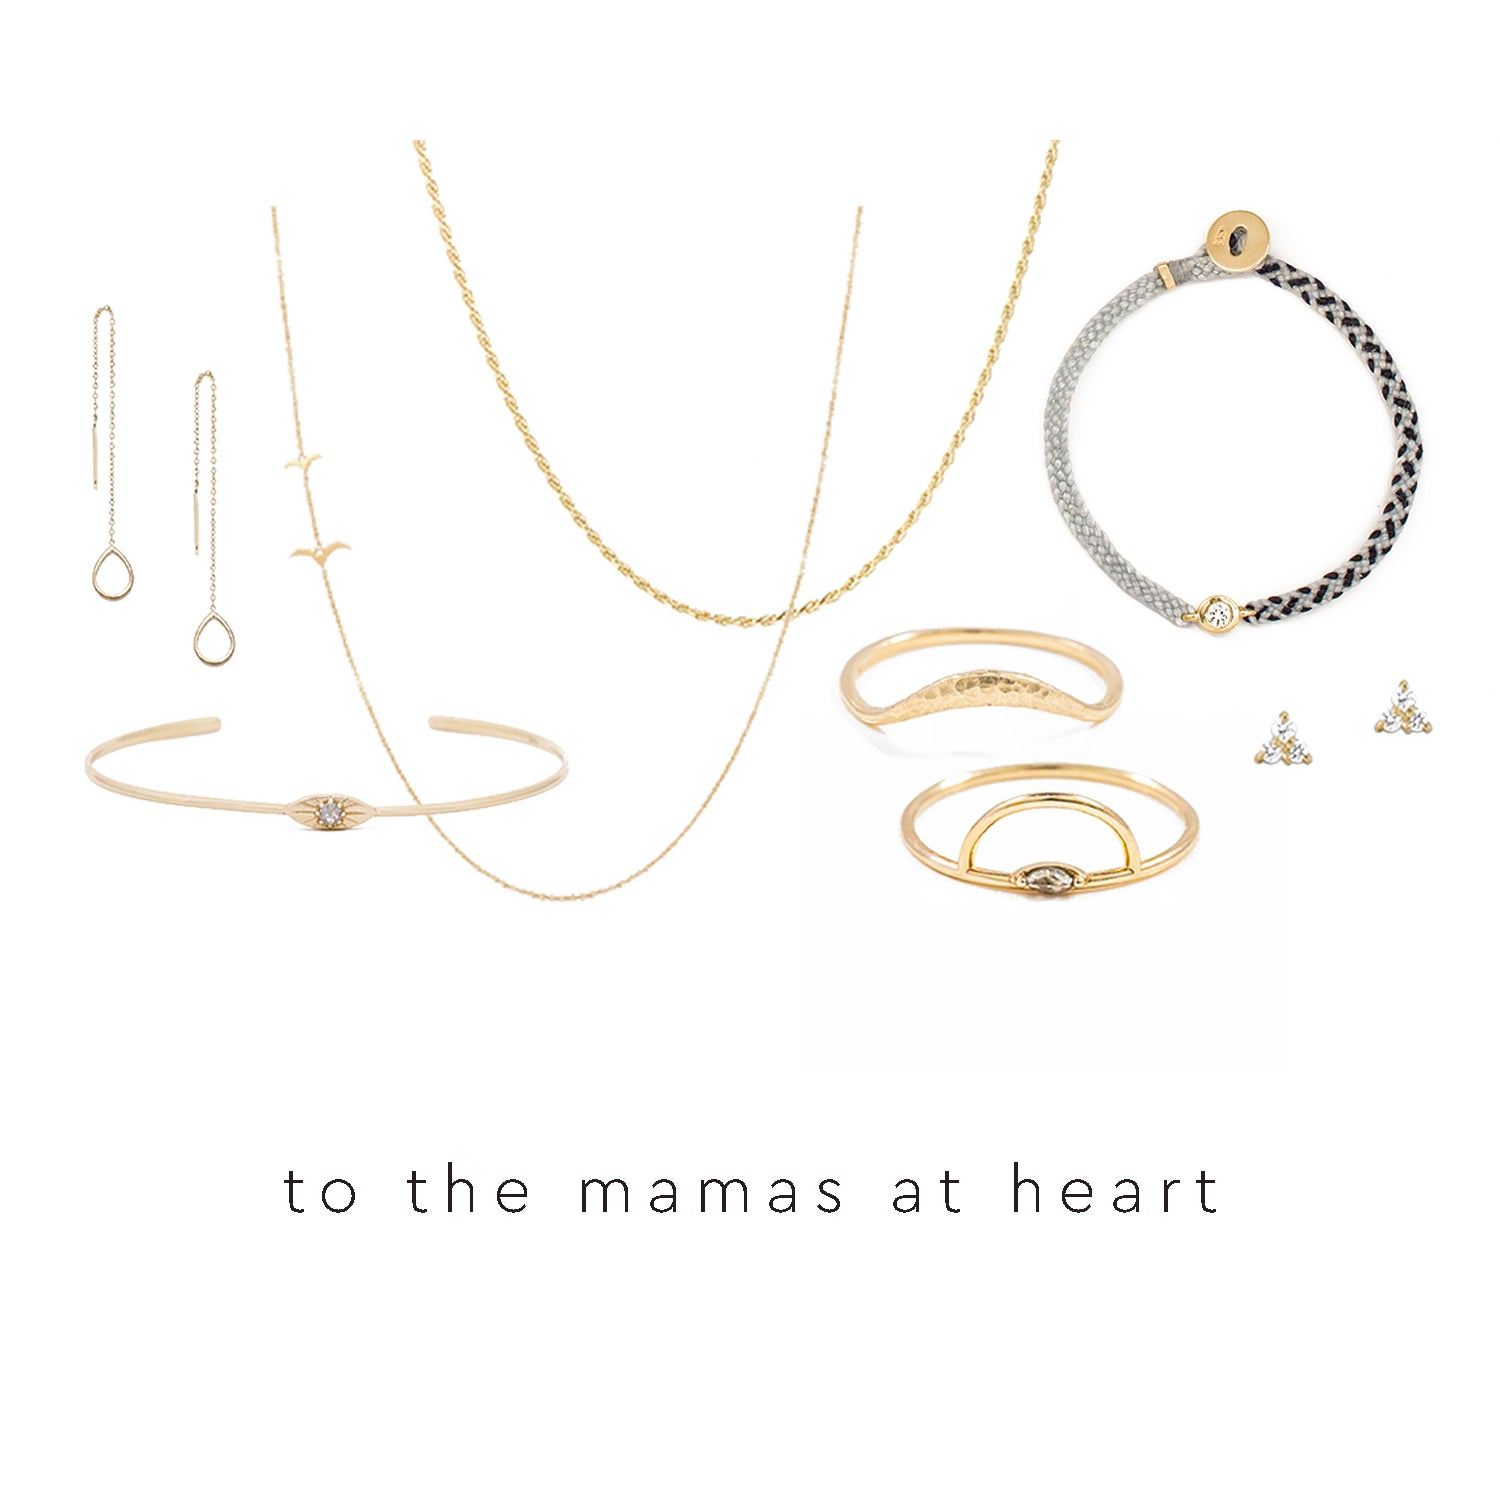 a mothers day gift guide to all of the mother's at heart